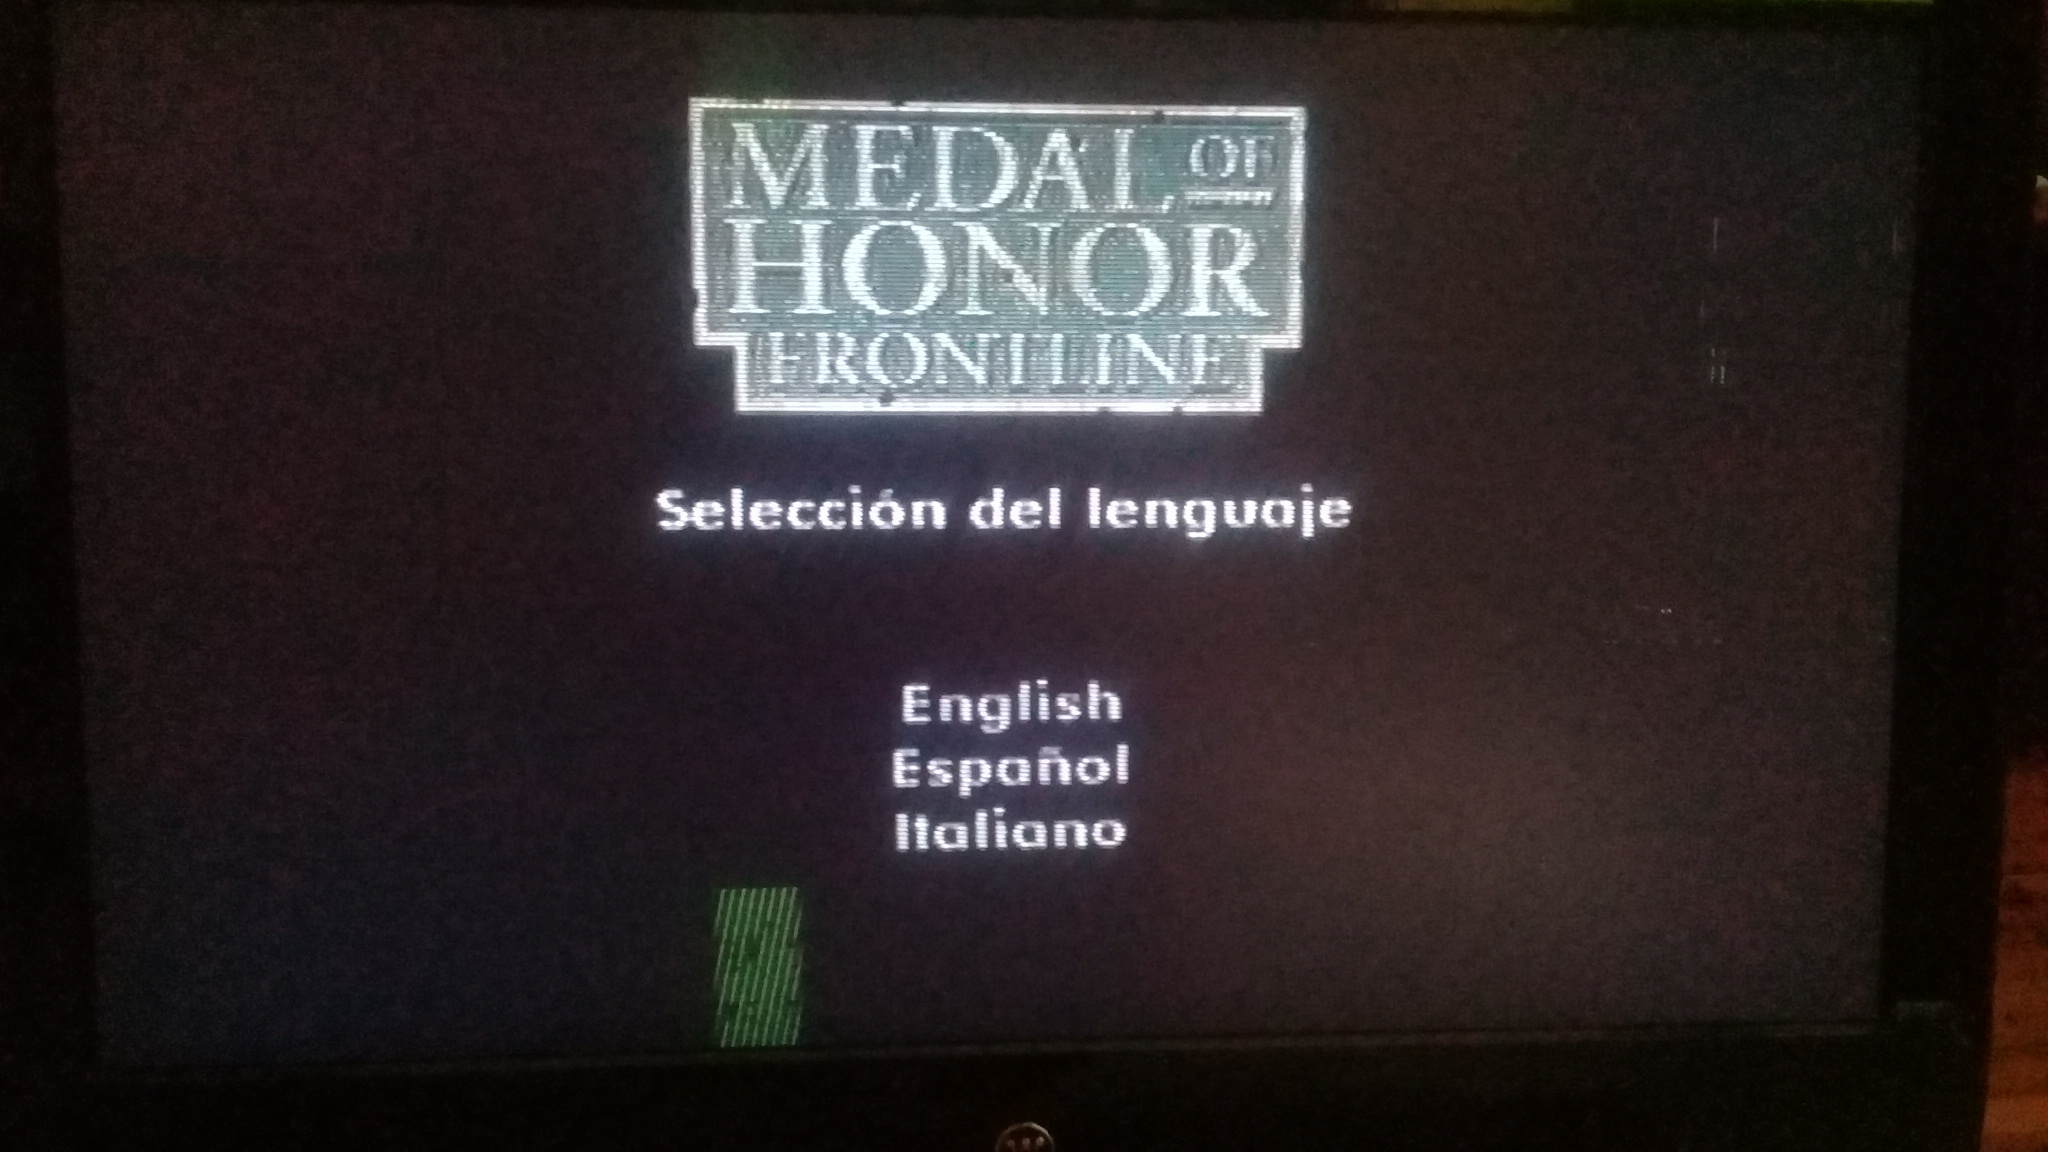 PS2/Como jugar isos PAL en TV de region NTSC con chip Matrix